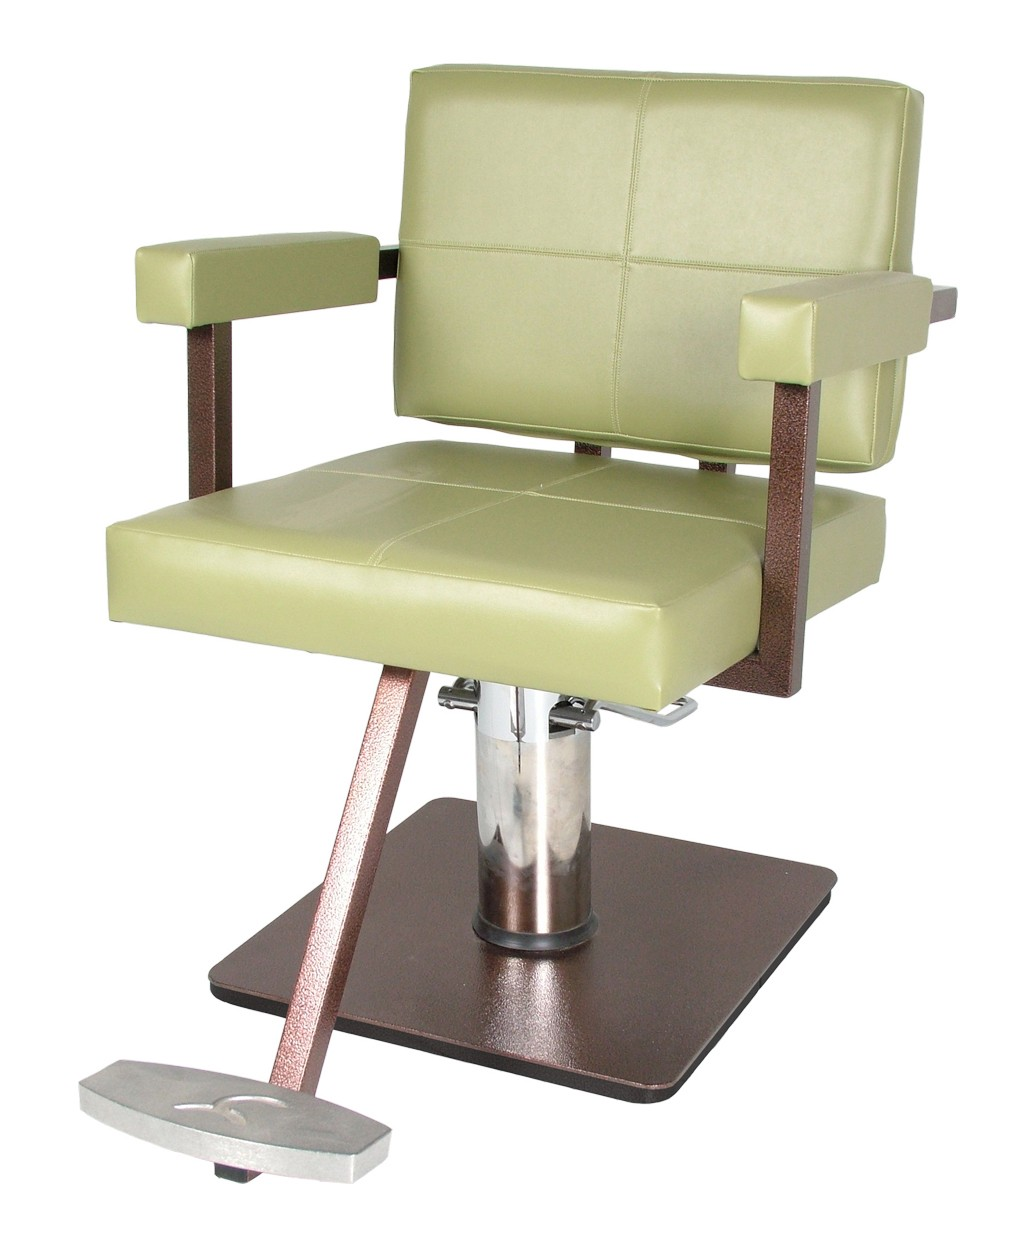 6700X Quarta Styling Chair with Square Base